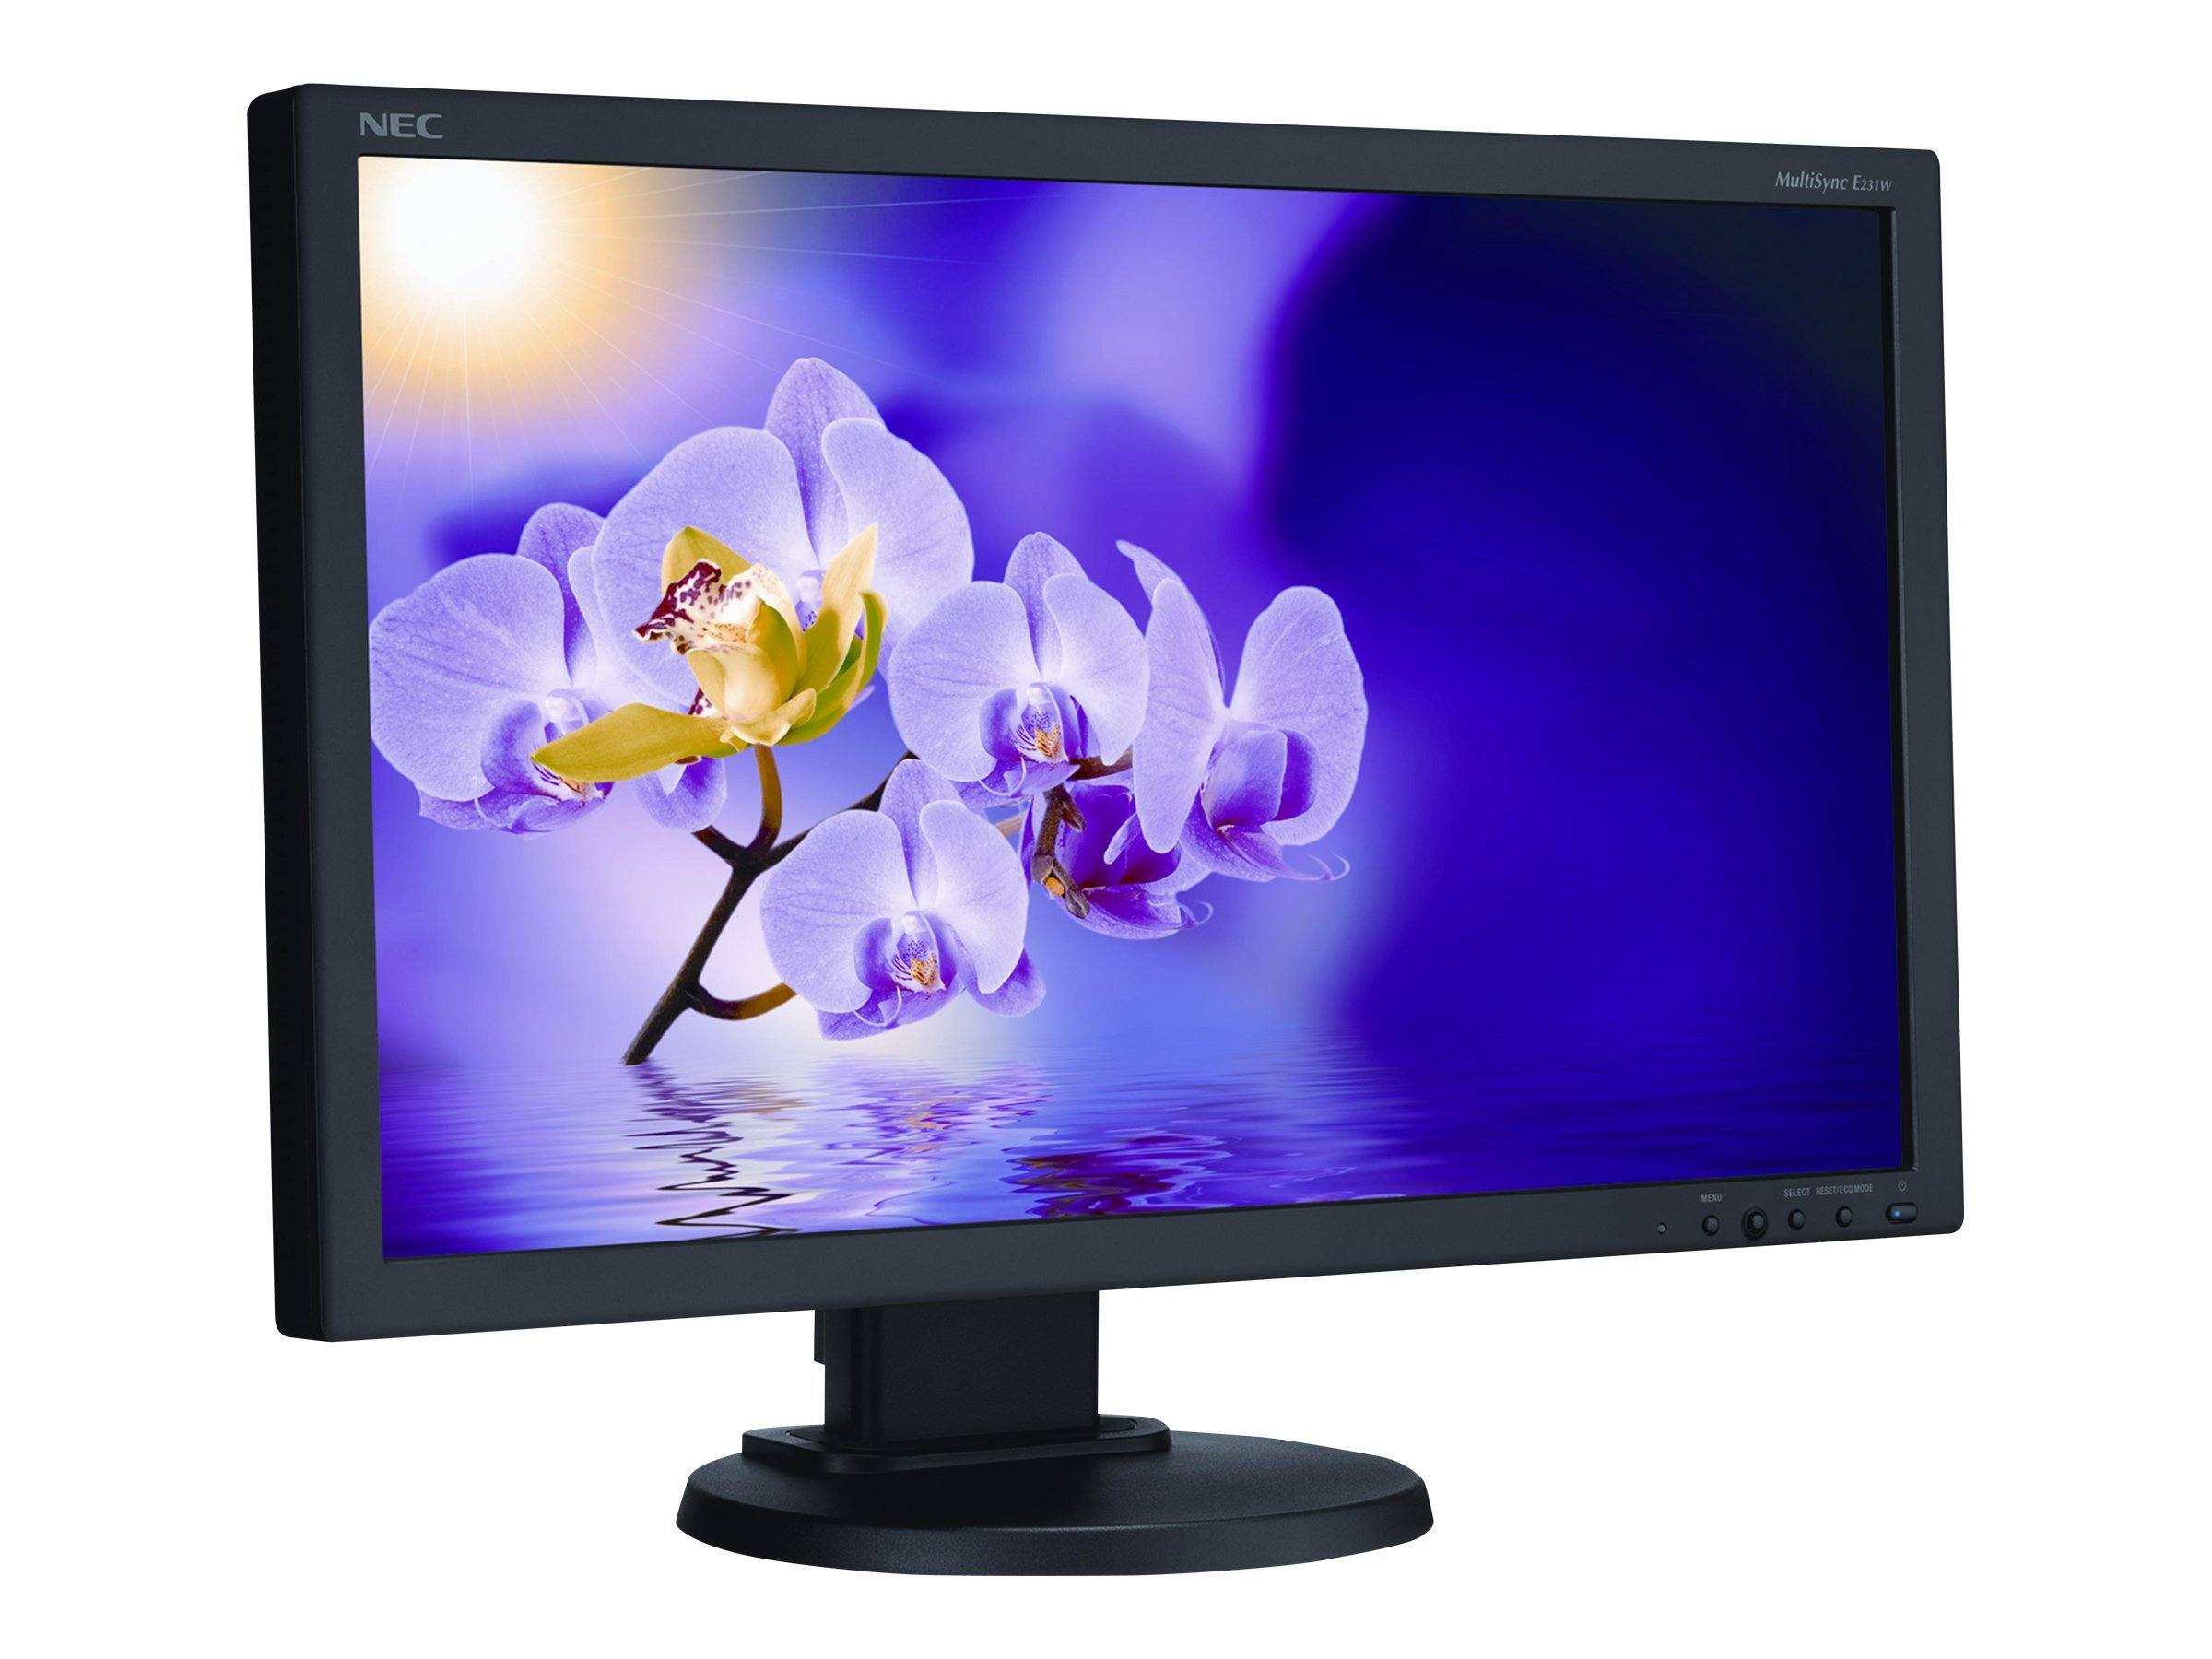 Scratch & Dent NEC 23 E231W-BK LED-LCD Monitor, Black, E231W-BK, 30861848, Monitors - LED-LCD